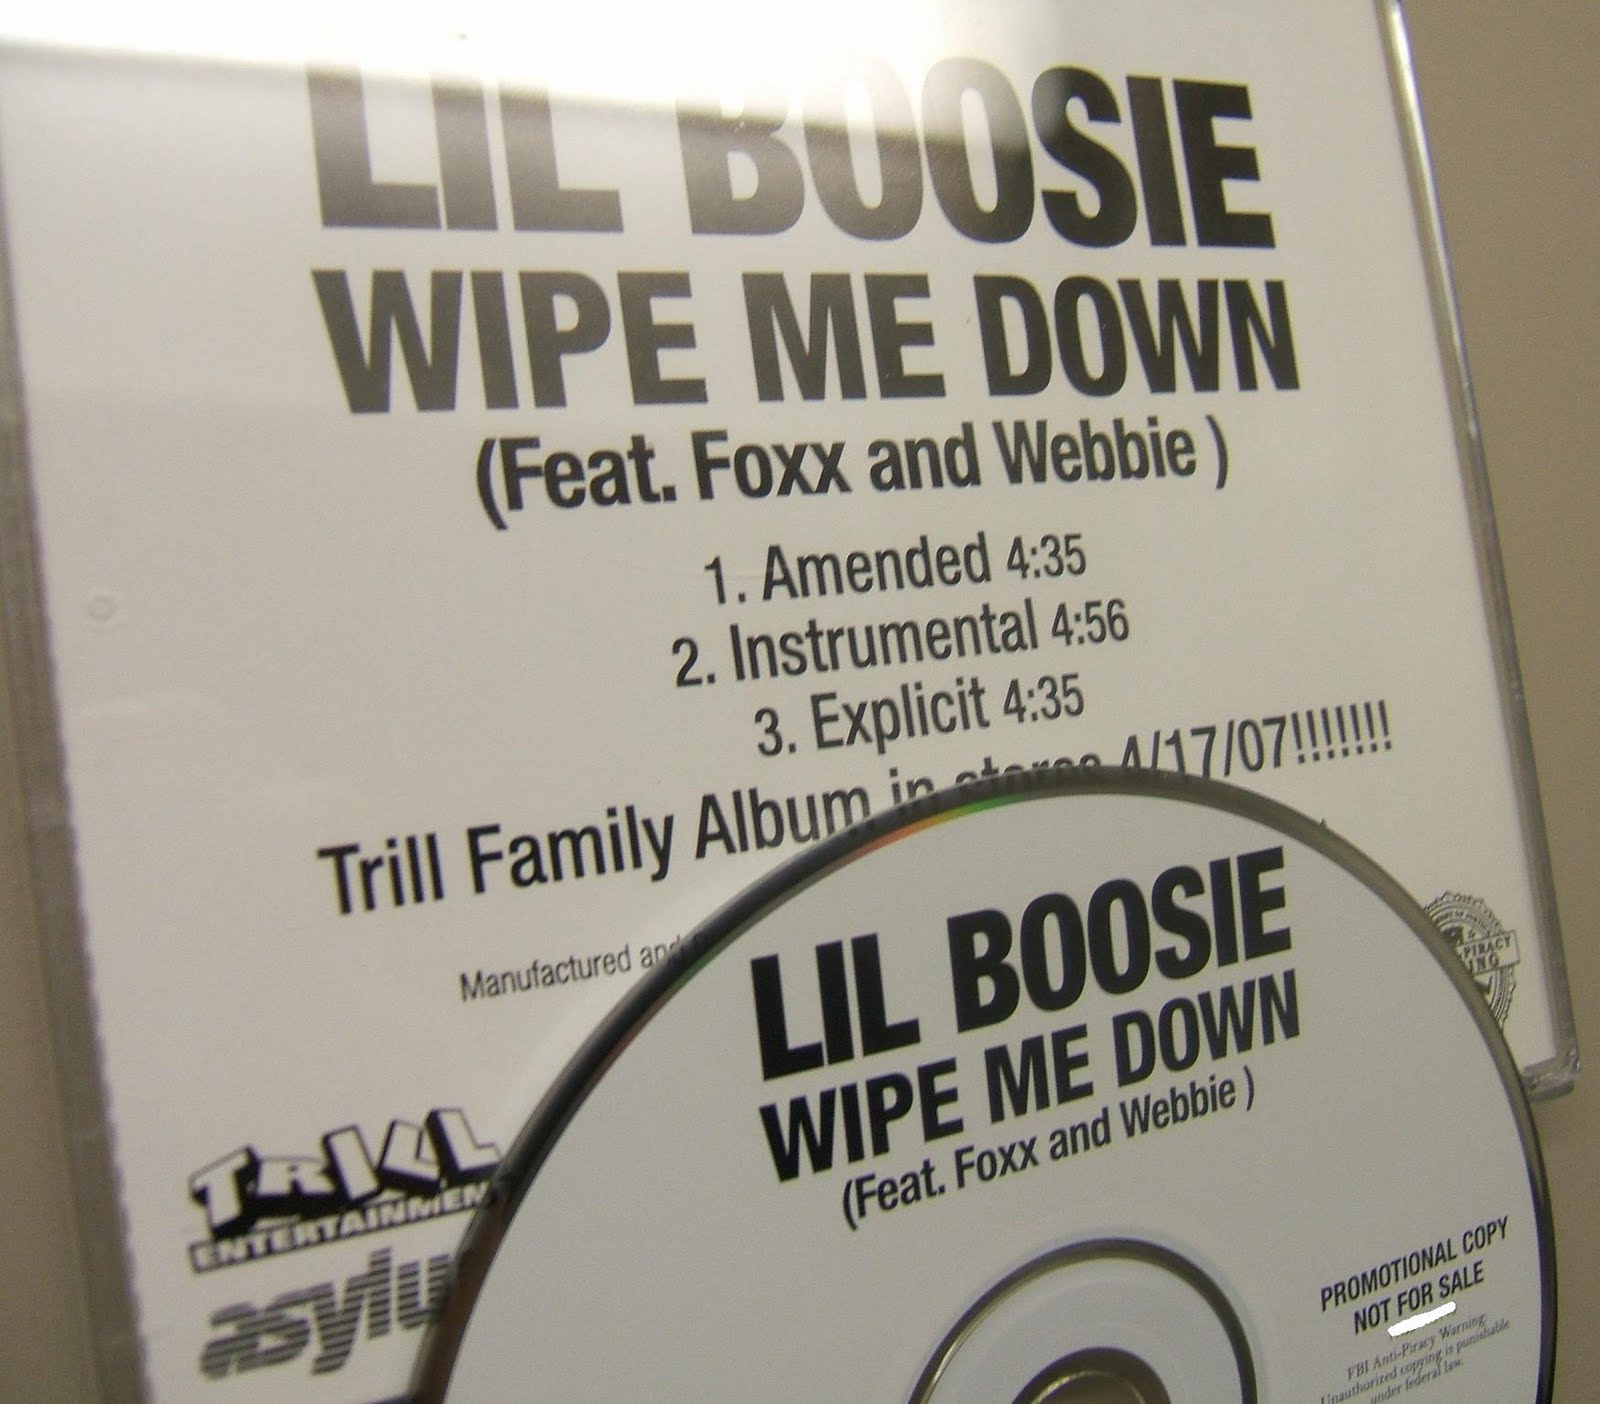 http://2.bp.blogspot.com/_9cw-jhhRBE4/S-hHU9BA3SI/AAAAAAAADAE/EX4IPsRz-t4/s1600/00-lil_boosie_ft_foxx_and_webbie-wipe_me_down-(promo_cds)-2007-(proof)-whoa.jpg